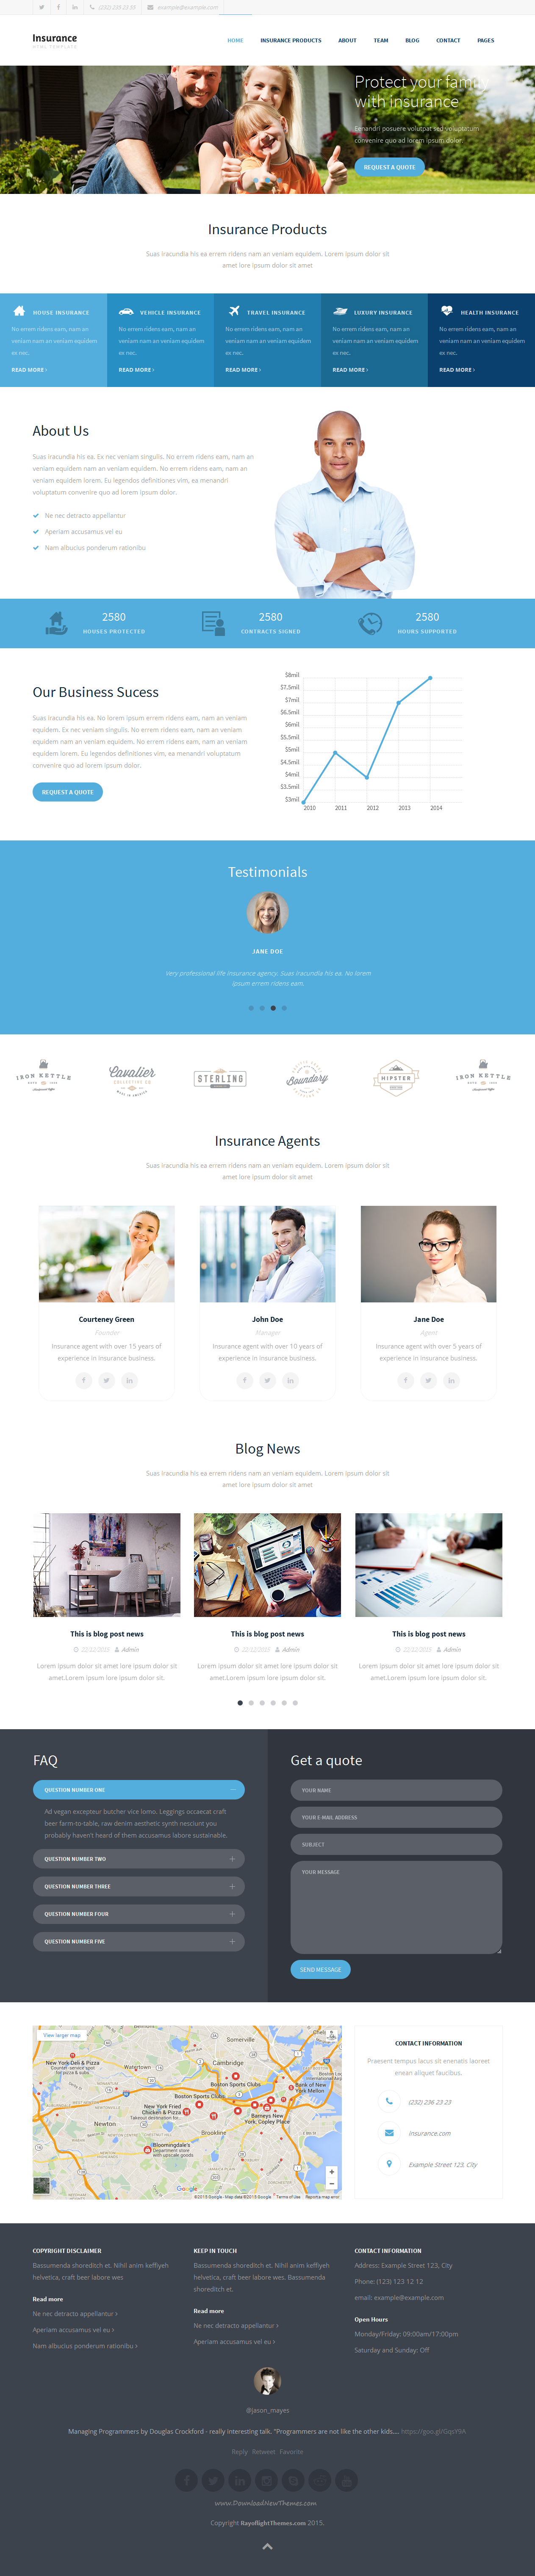 Insurance Agency - HTML5 Website Template | Website template ...